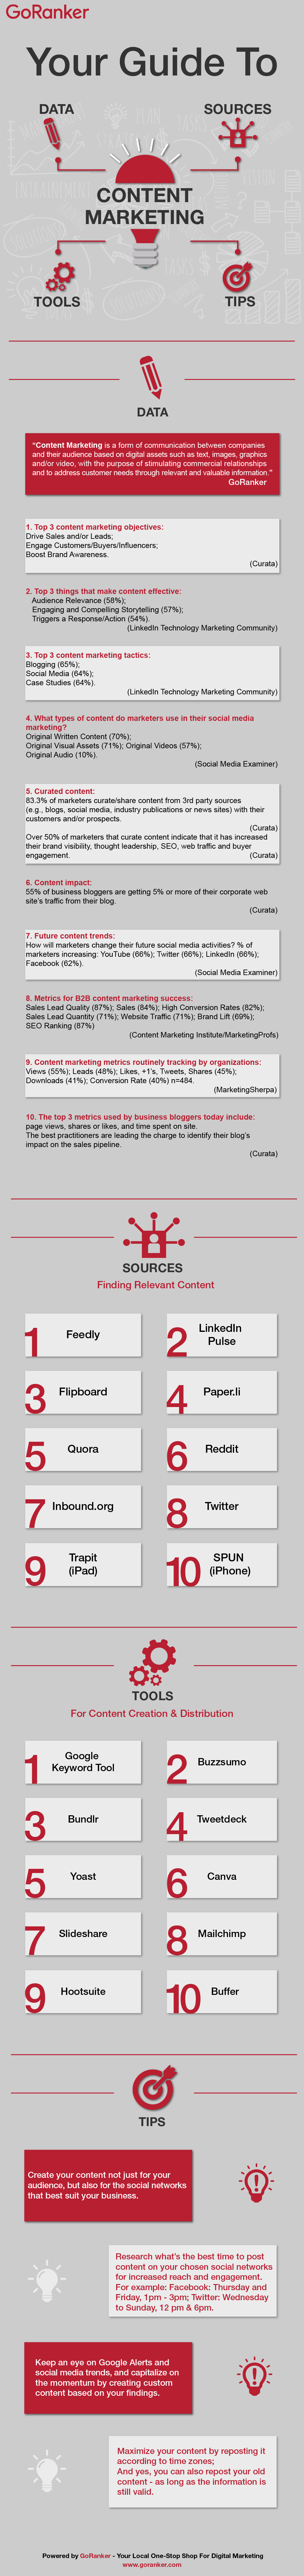 a visual guide to content marketing by GoRanker